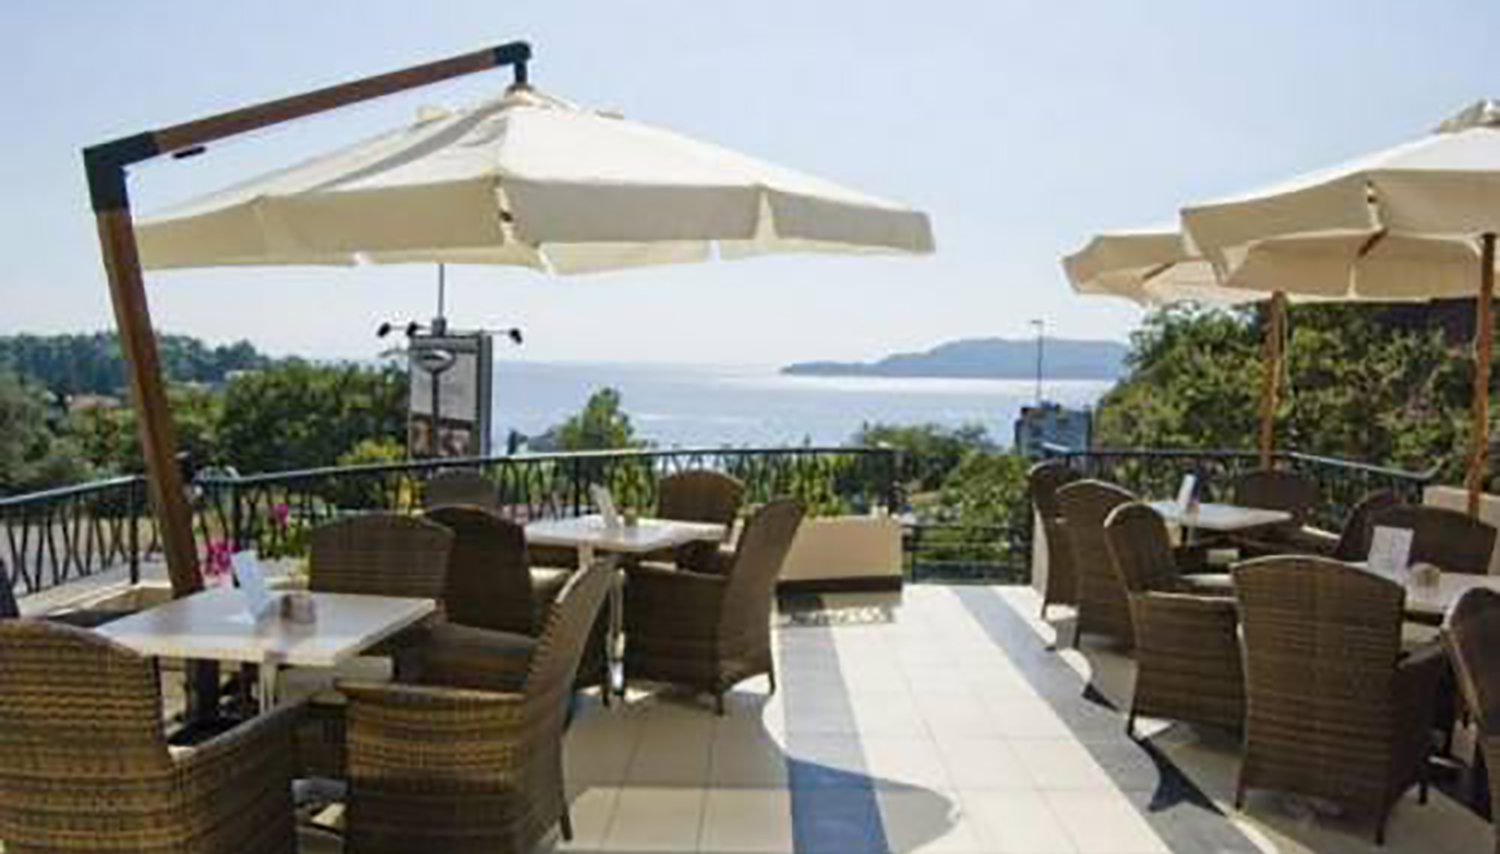 HEC Residence hotell (Tivat, Montenegro – Horvaatia)